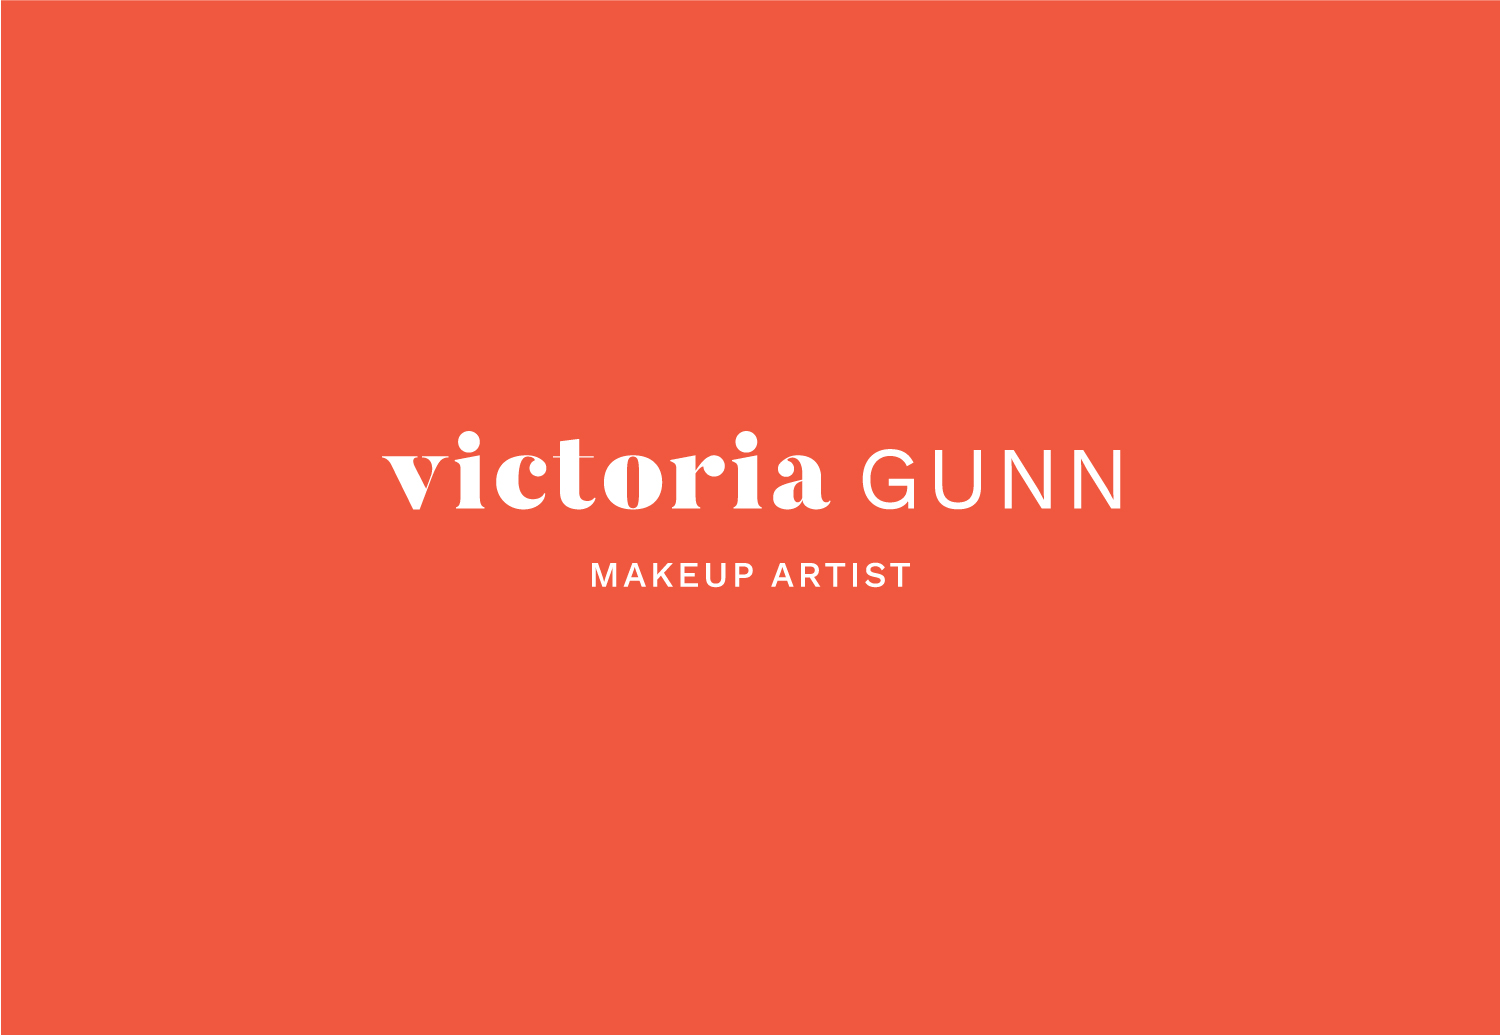 Logo design for Victoria Gunn by Now or Never Design